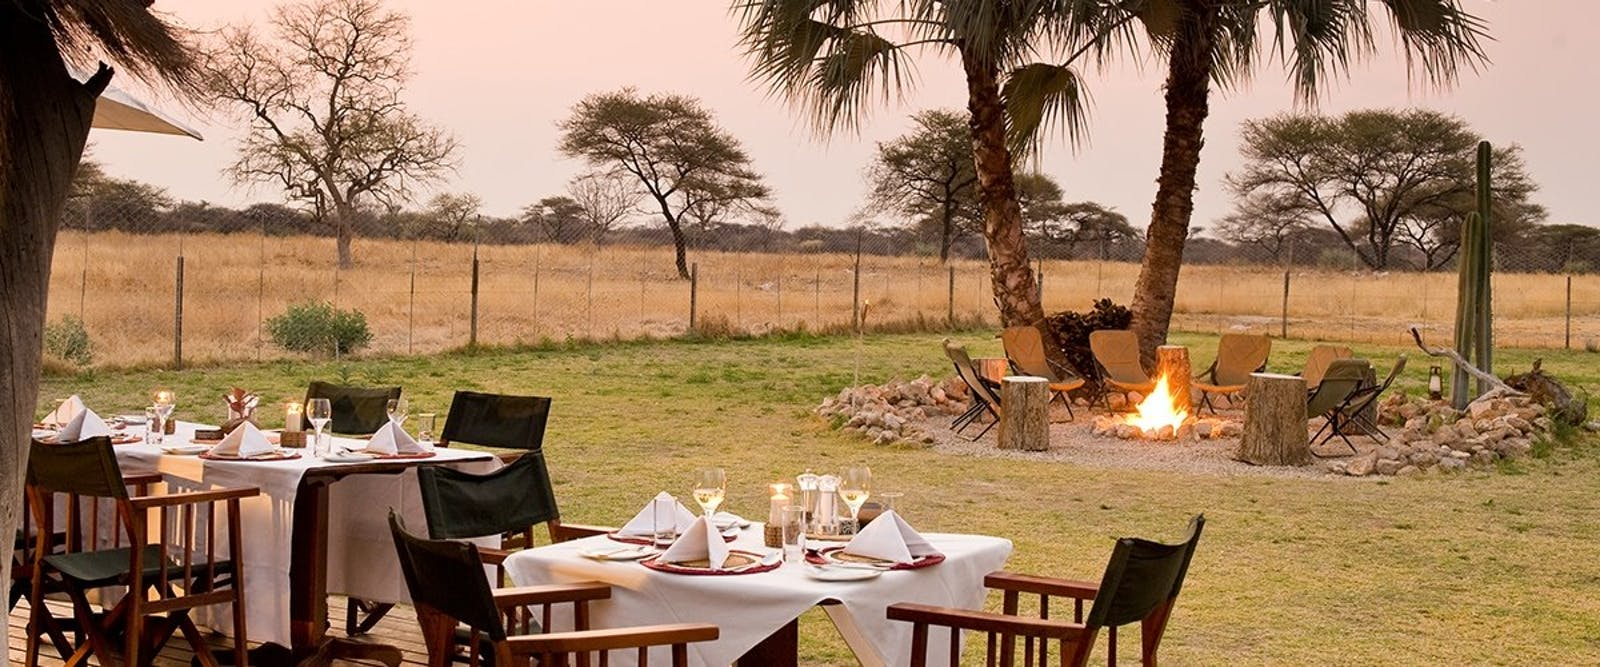 Dining area in Bush Camp at Onguma Private Game Reserve